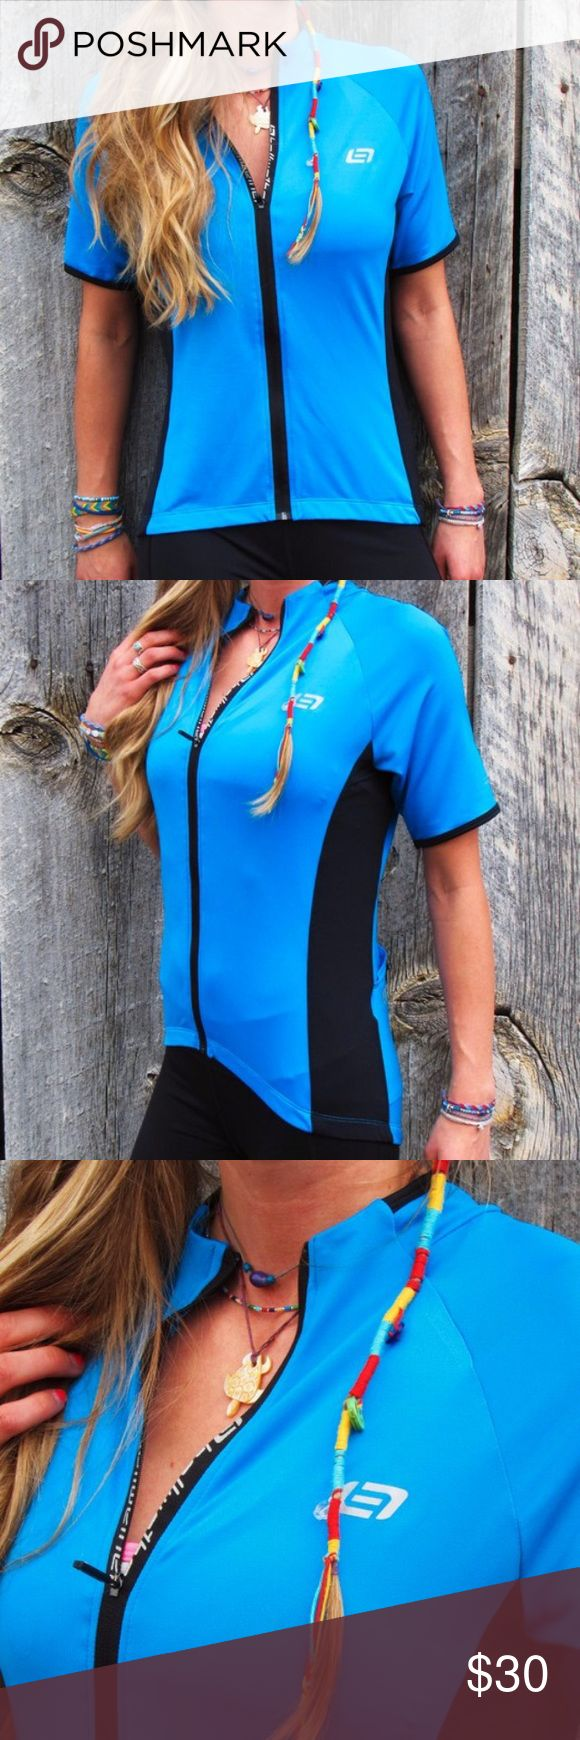 NEW Biker Blue Zip Up Jersey Tee This awesome biker blue workout zip up jersey tee by Bellwether is brand new. Made of the perfect combination of polyester & spandex this top has been fashioned to move with you for ultimate comfort. Reflective elements on both the front & back keep you visible & safe. This amazing royal blue top is longer in the back & sports 3 large pockets & 1 smaller zippered pocket. The bottom hem has a grippy strip to keep it from riding up as you work out. Tag says L…